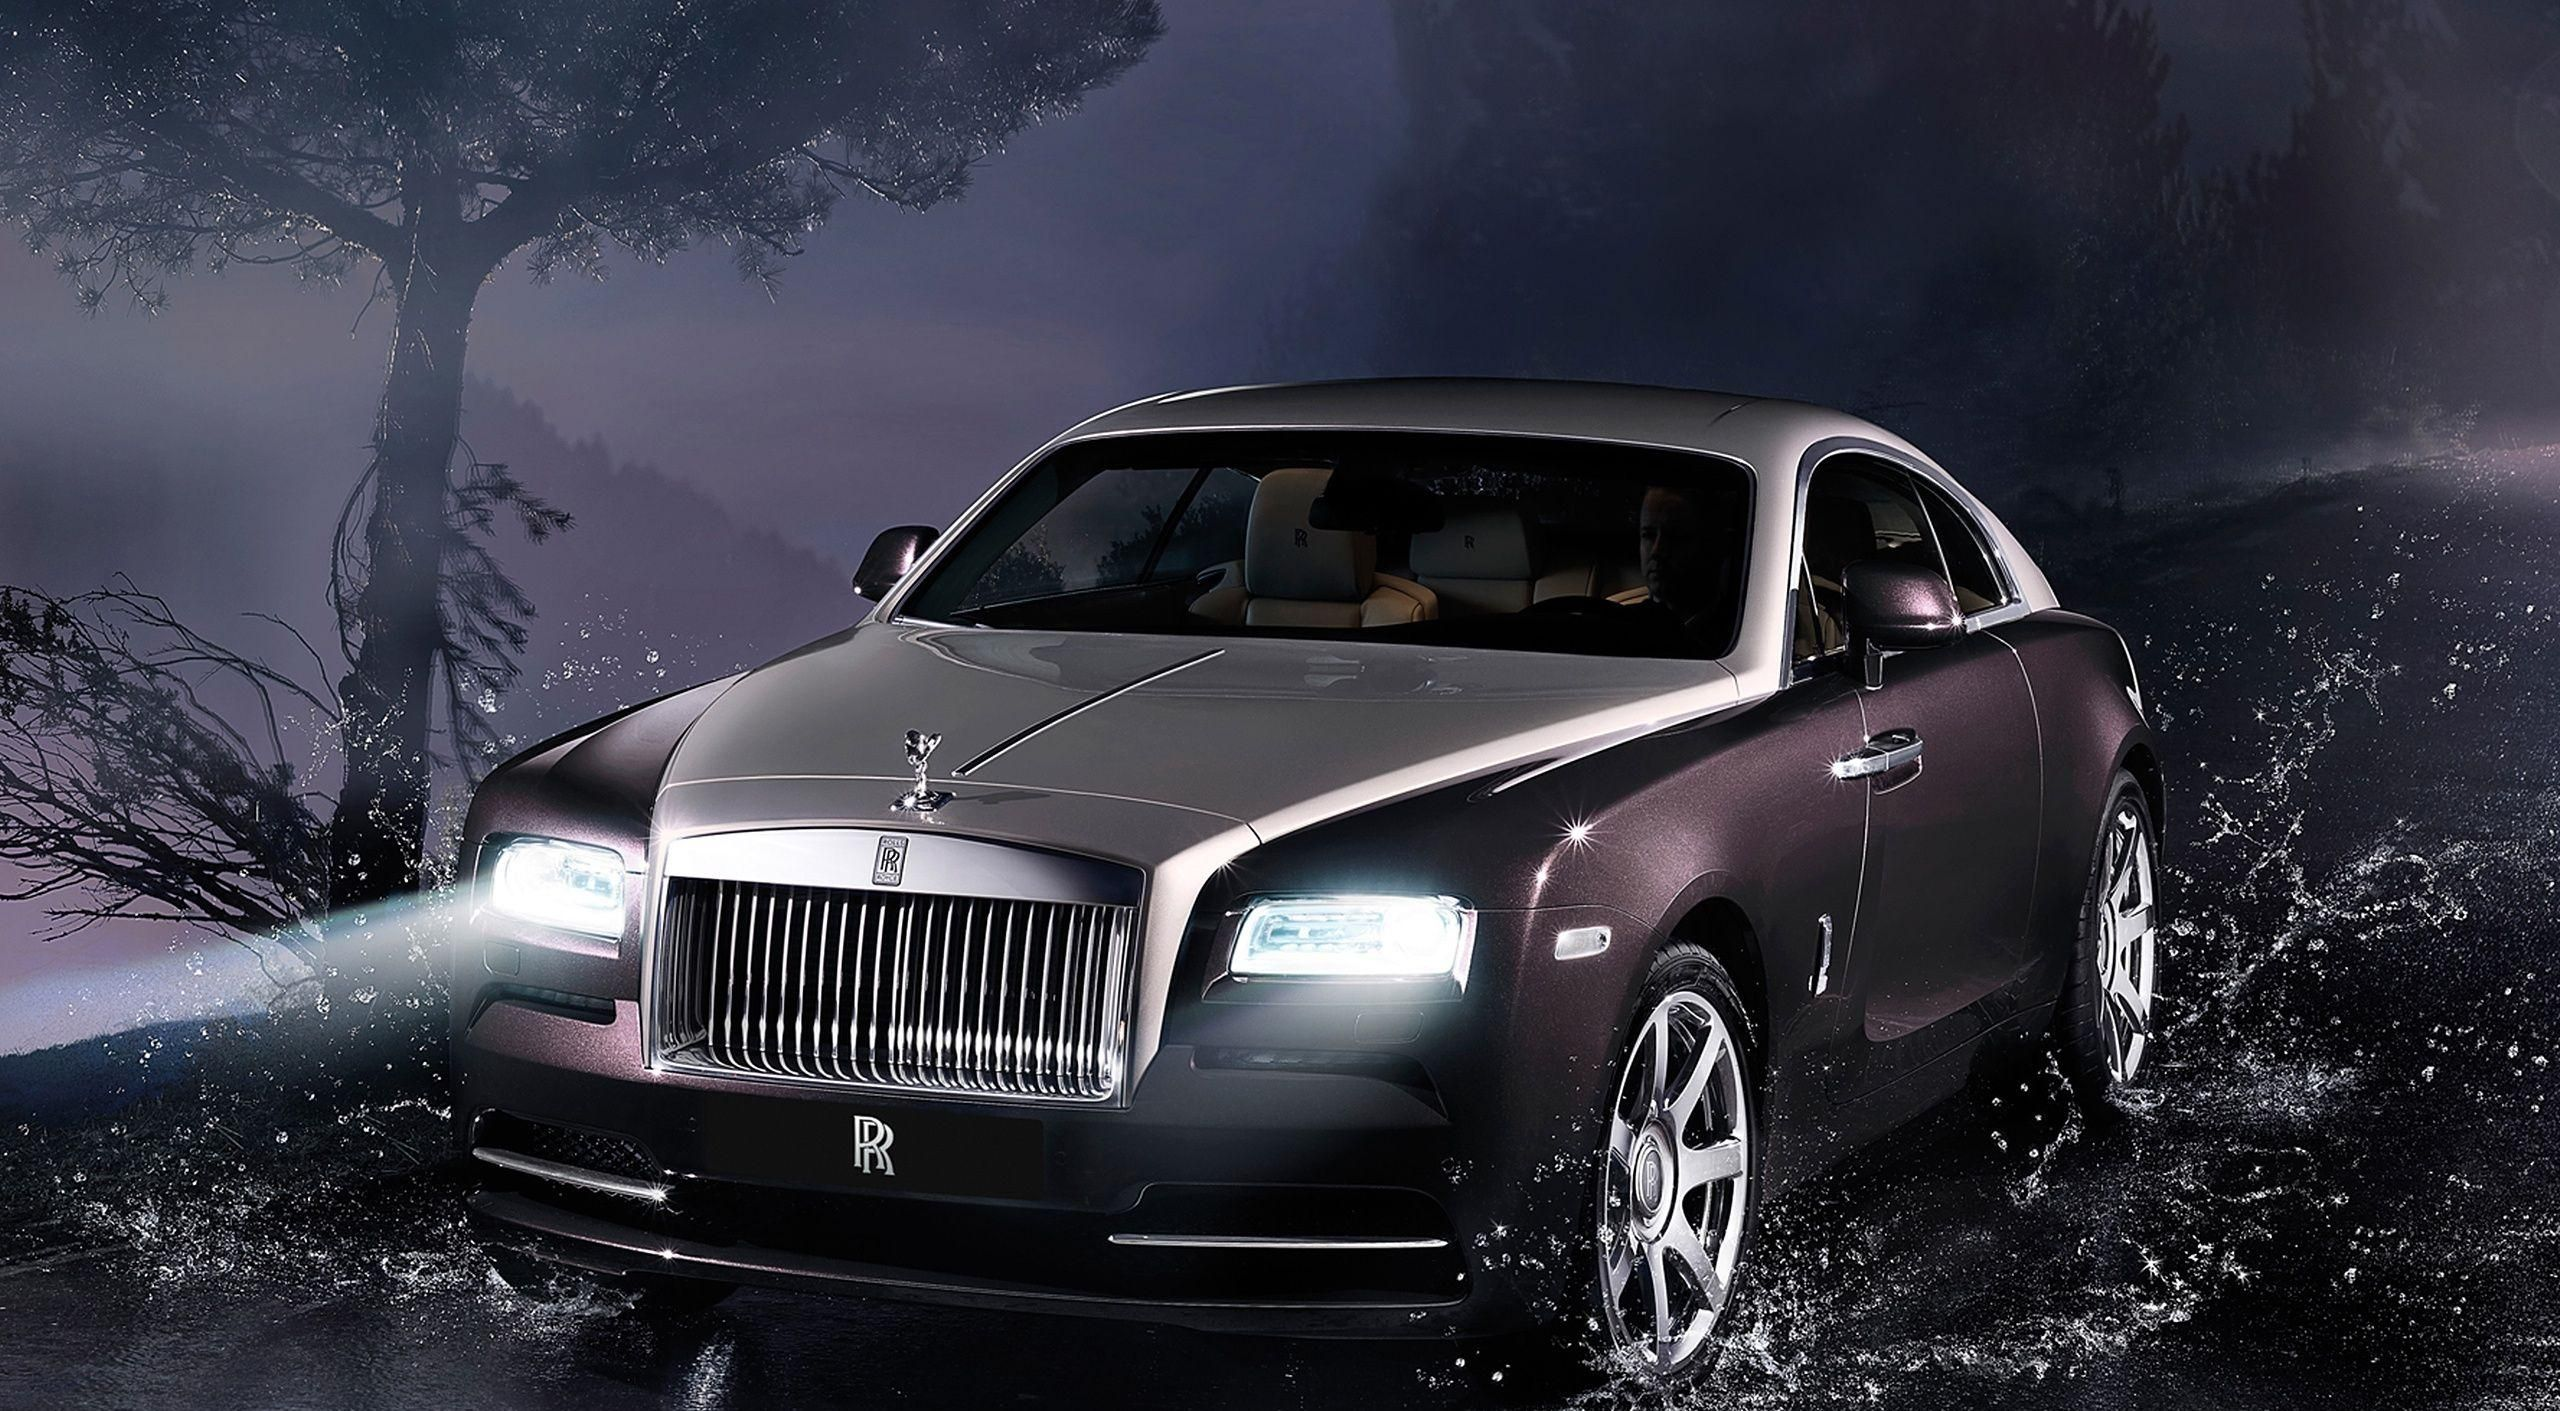 Rolls-Royce Wraith Full HD Wallpaper and Background Image ...